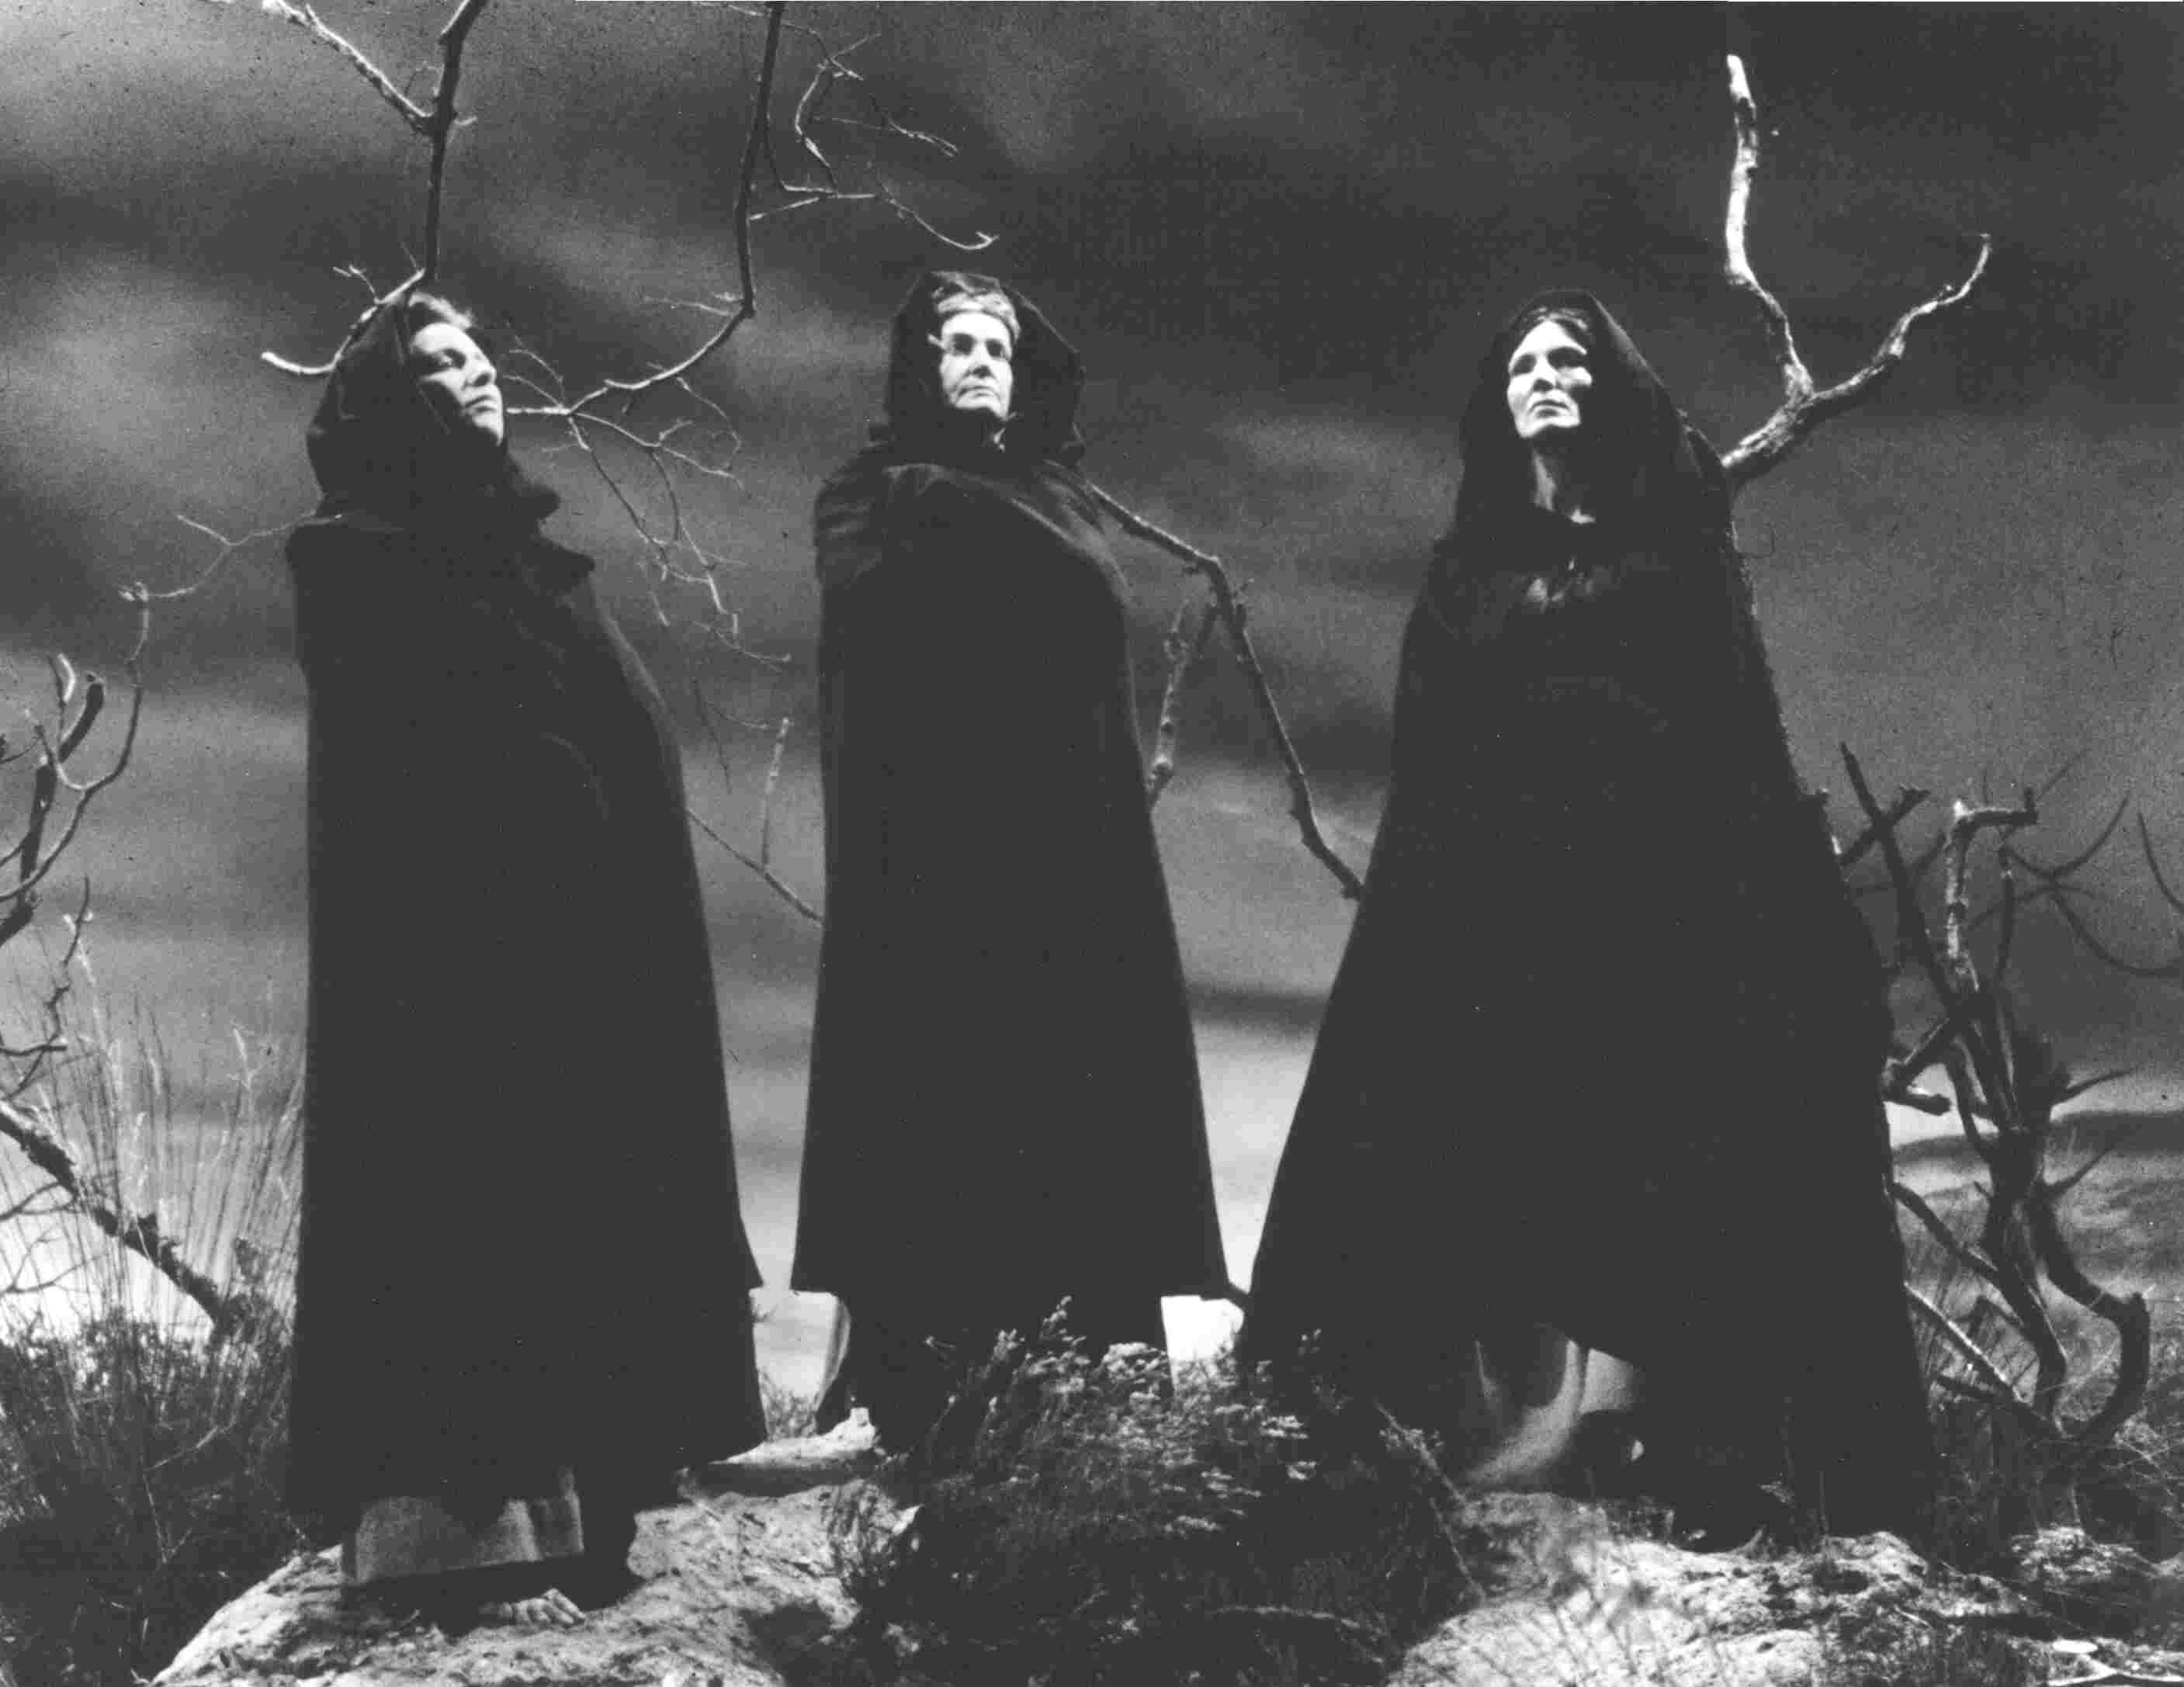 Macbeth 1971 Witches